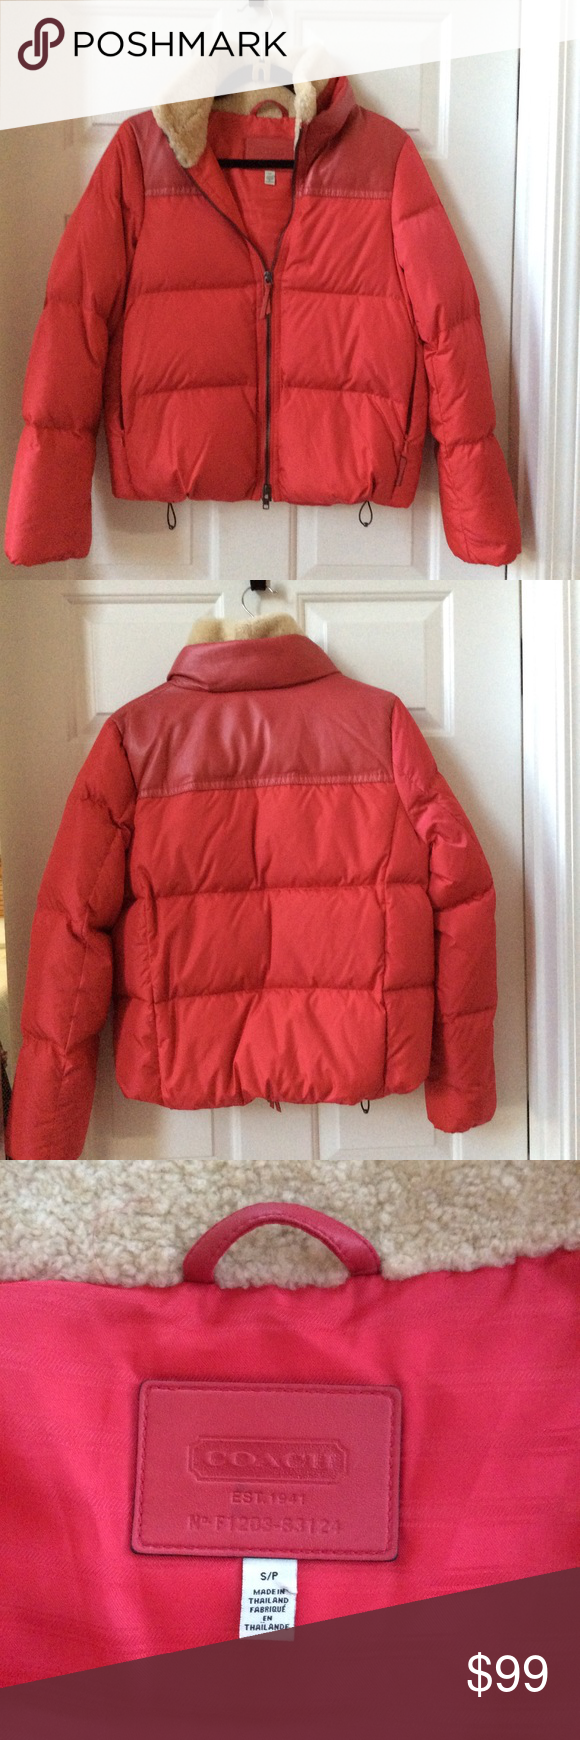 Coach Legacy Red Puffer Jacket Red Puffer Jacket Red Jacket Coach Legacy [ 1740 x 580 Pixel ]